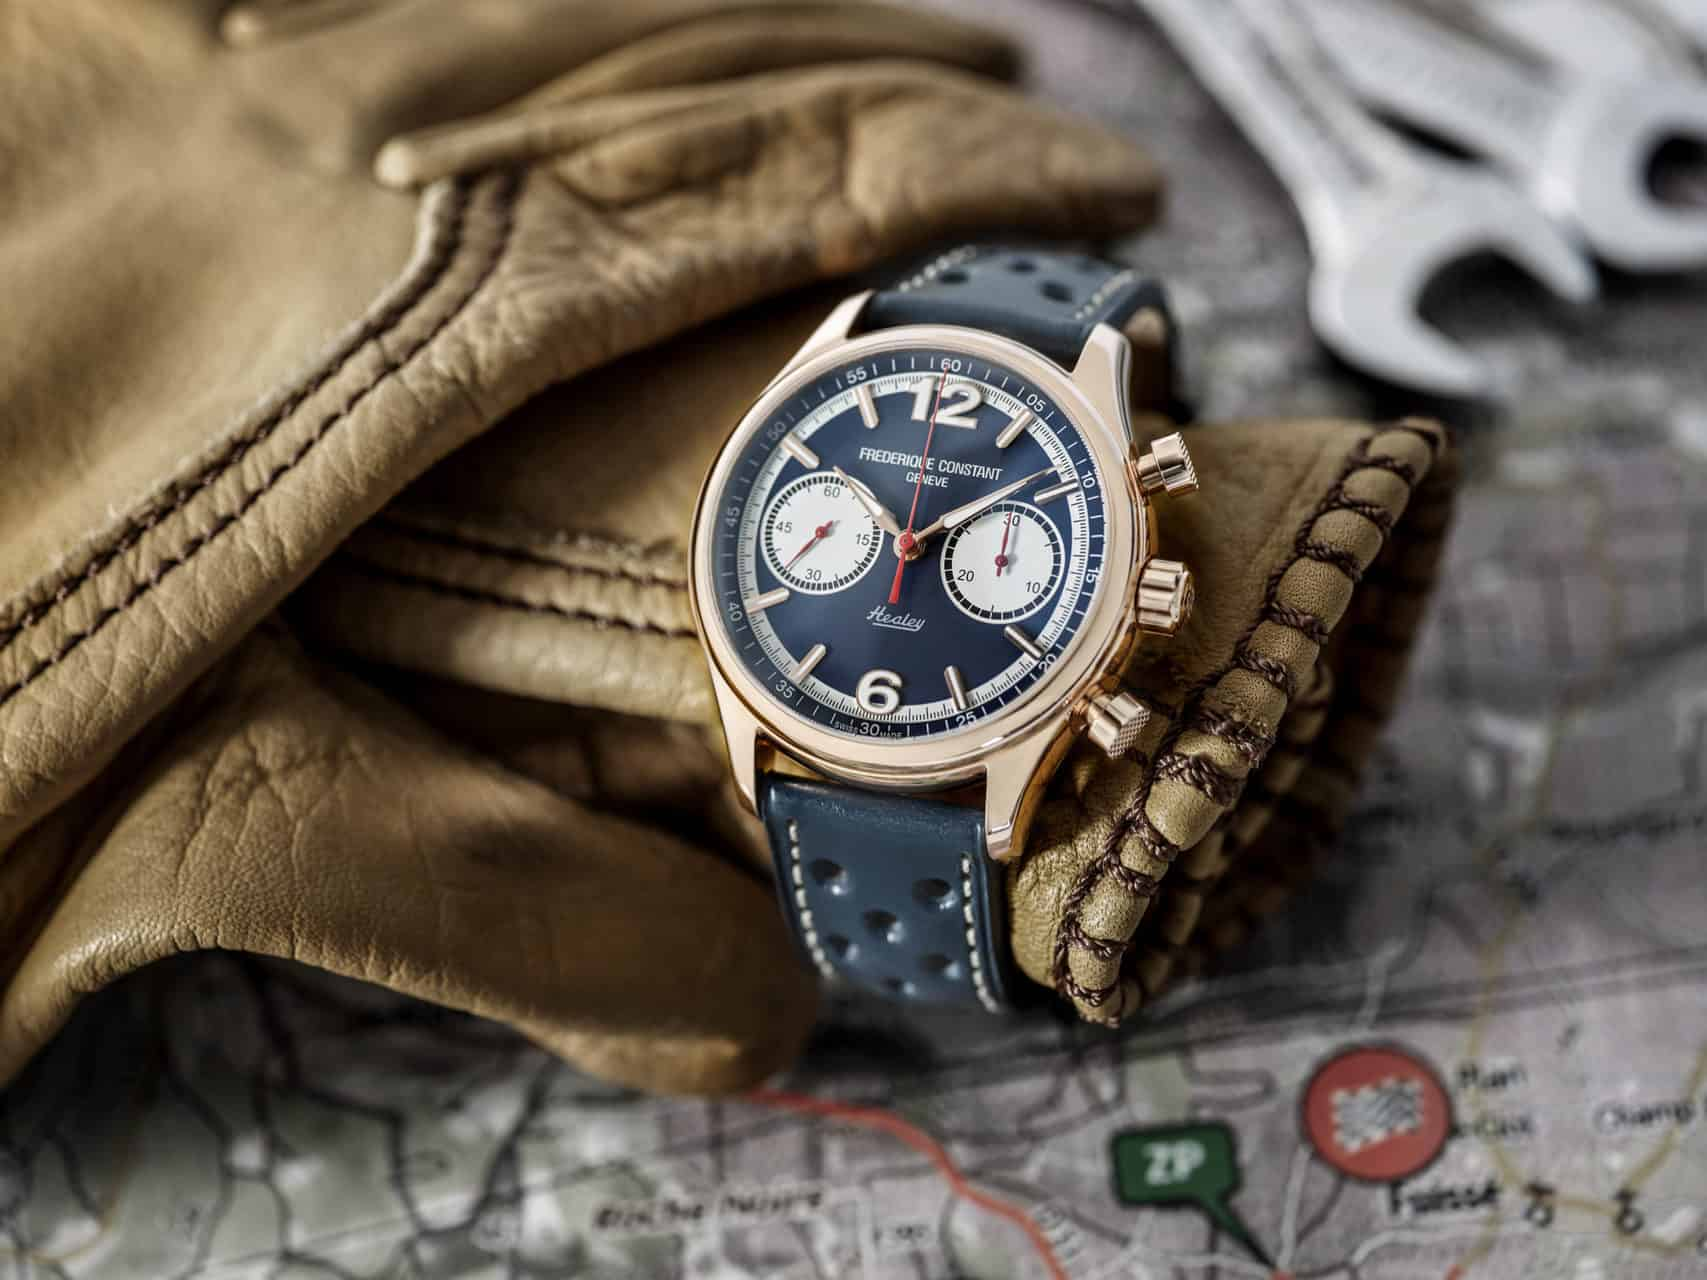 Frederique Constant Celebrates The Austin Healey Automobiles With Its New Limited Edtion Vintage Rally Chronograph